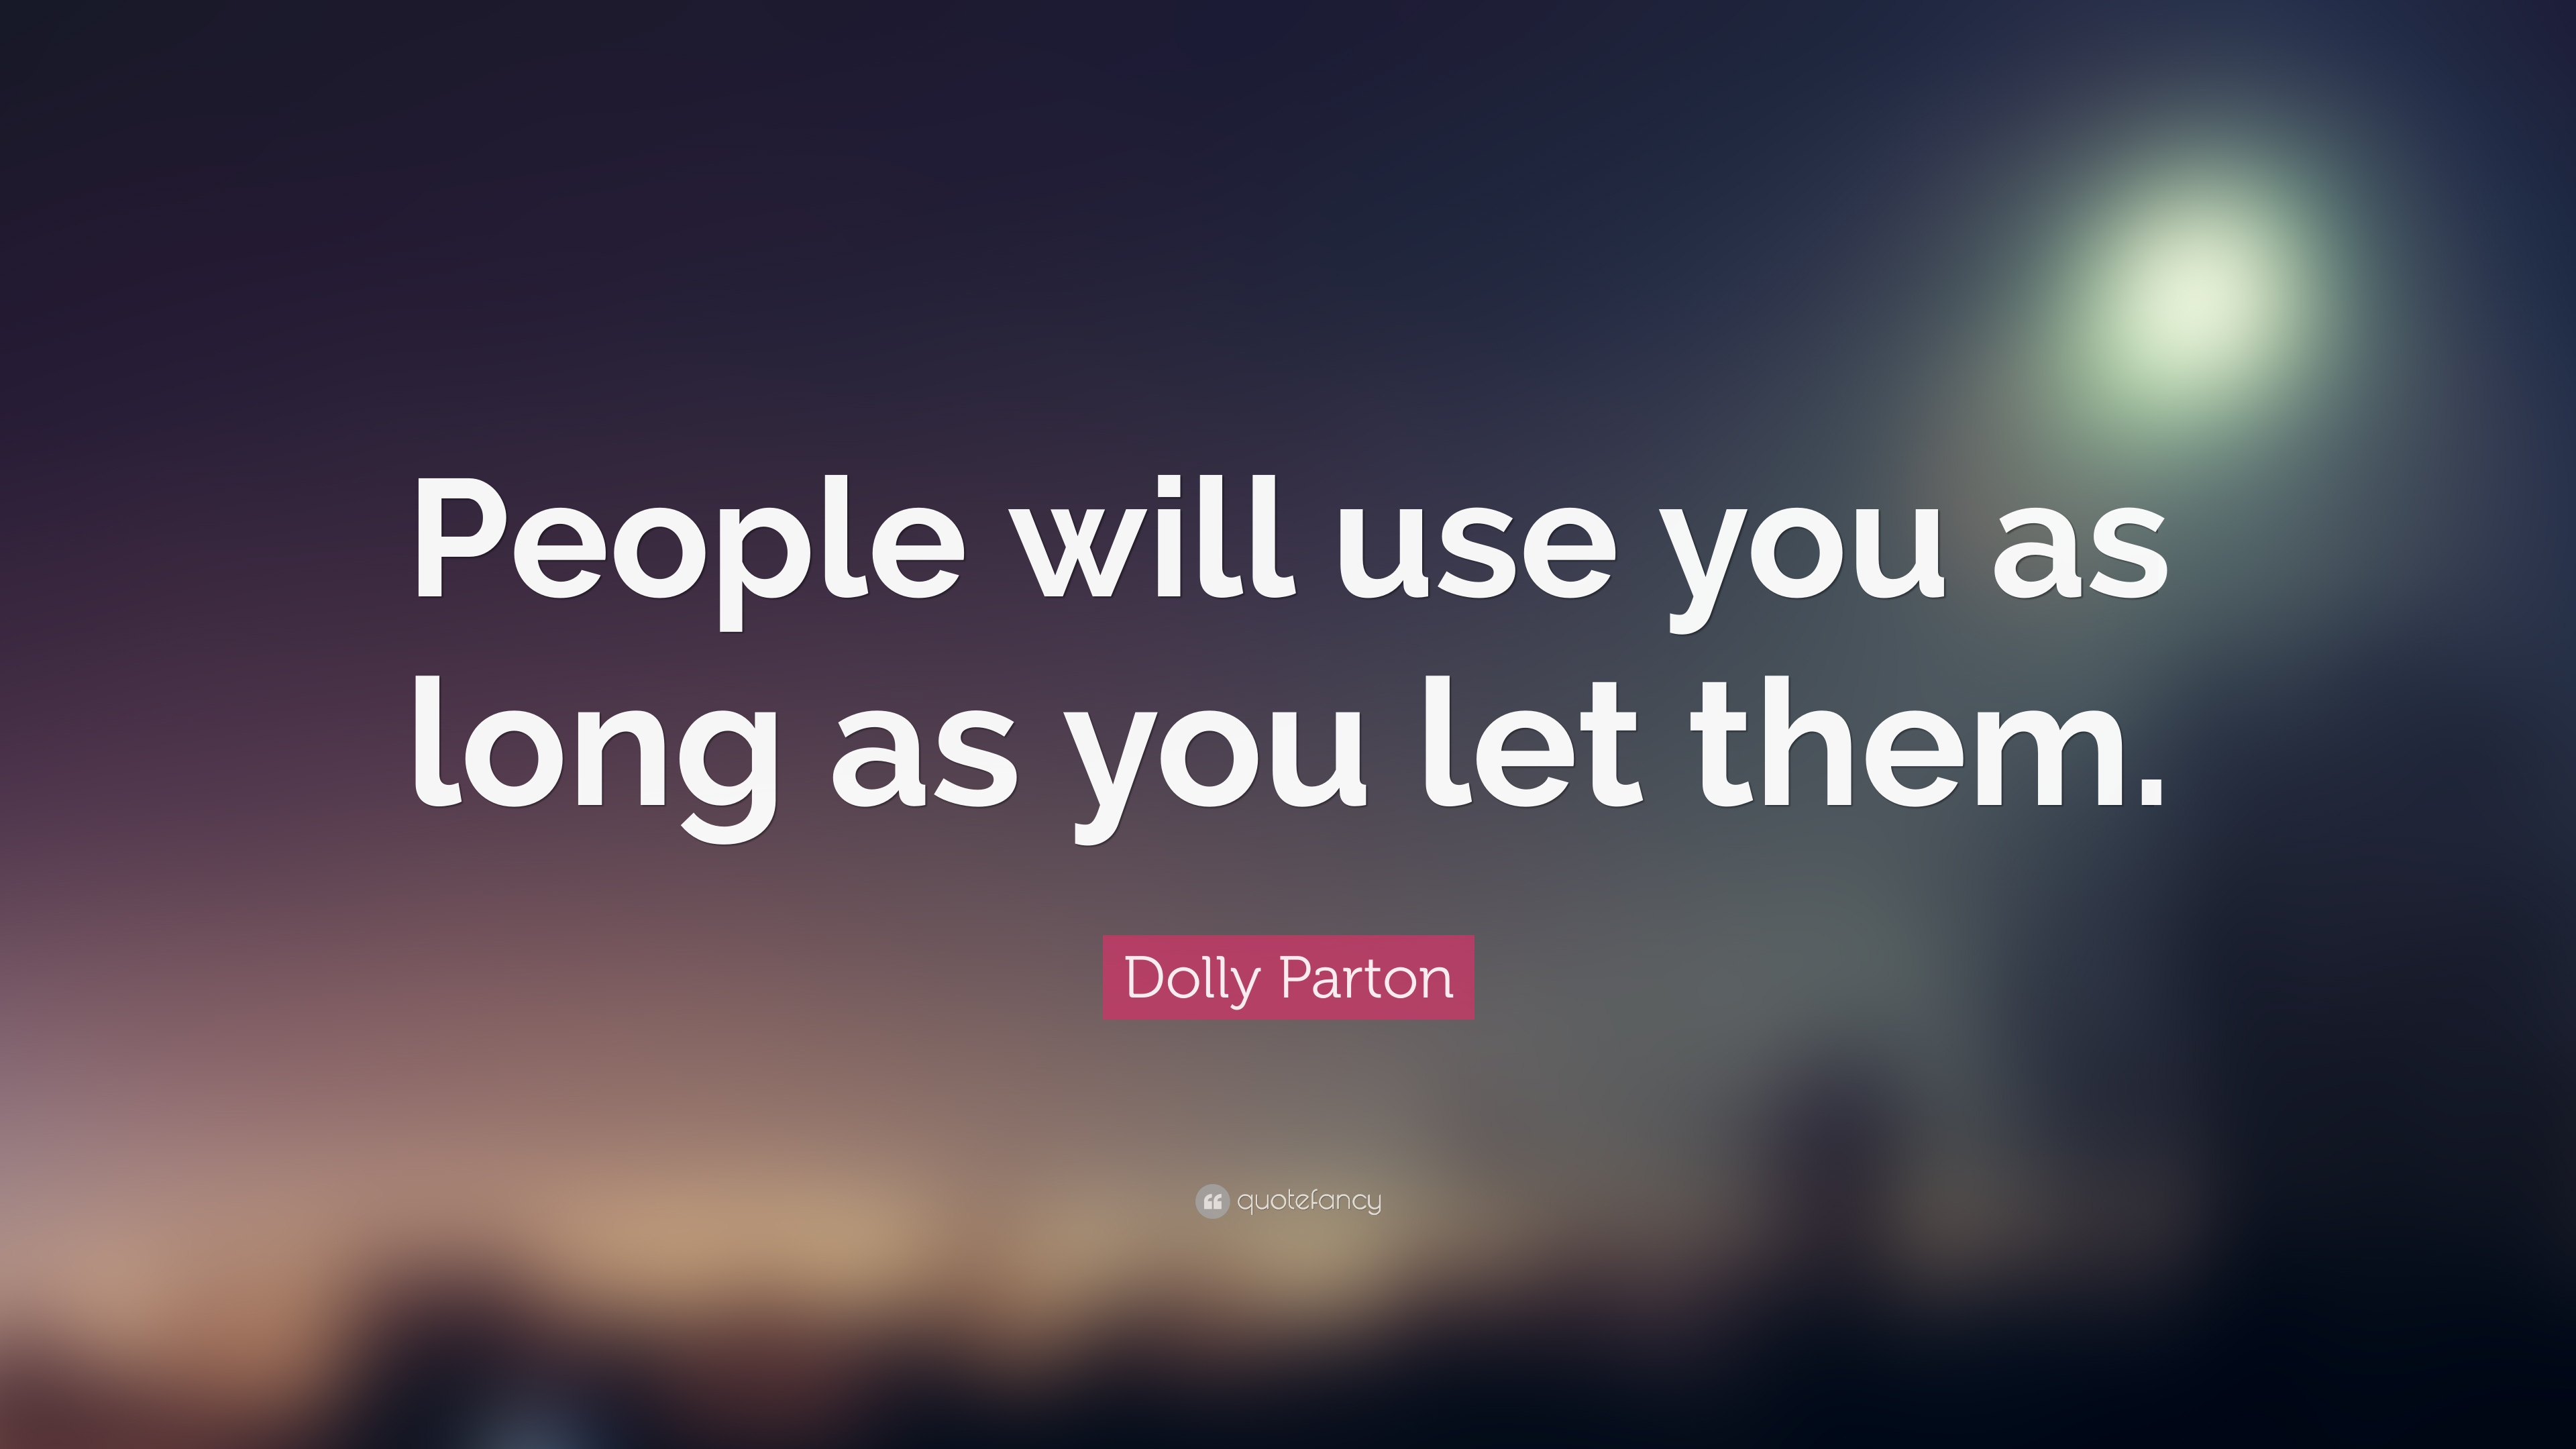 Dolly Parton Quote People Will Use You As Long As You Let Them